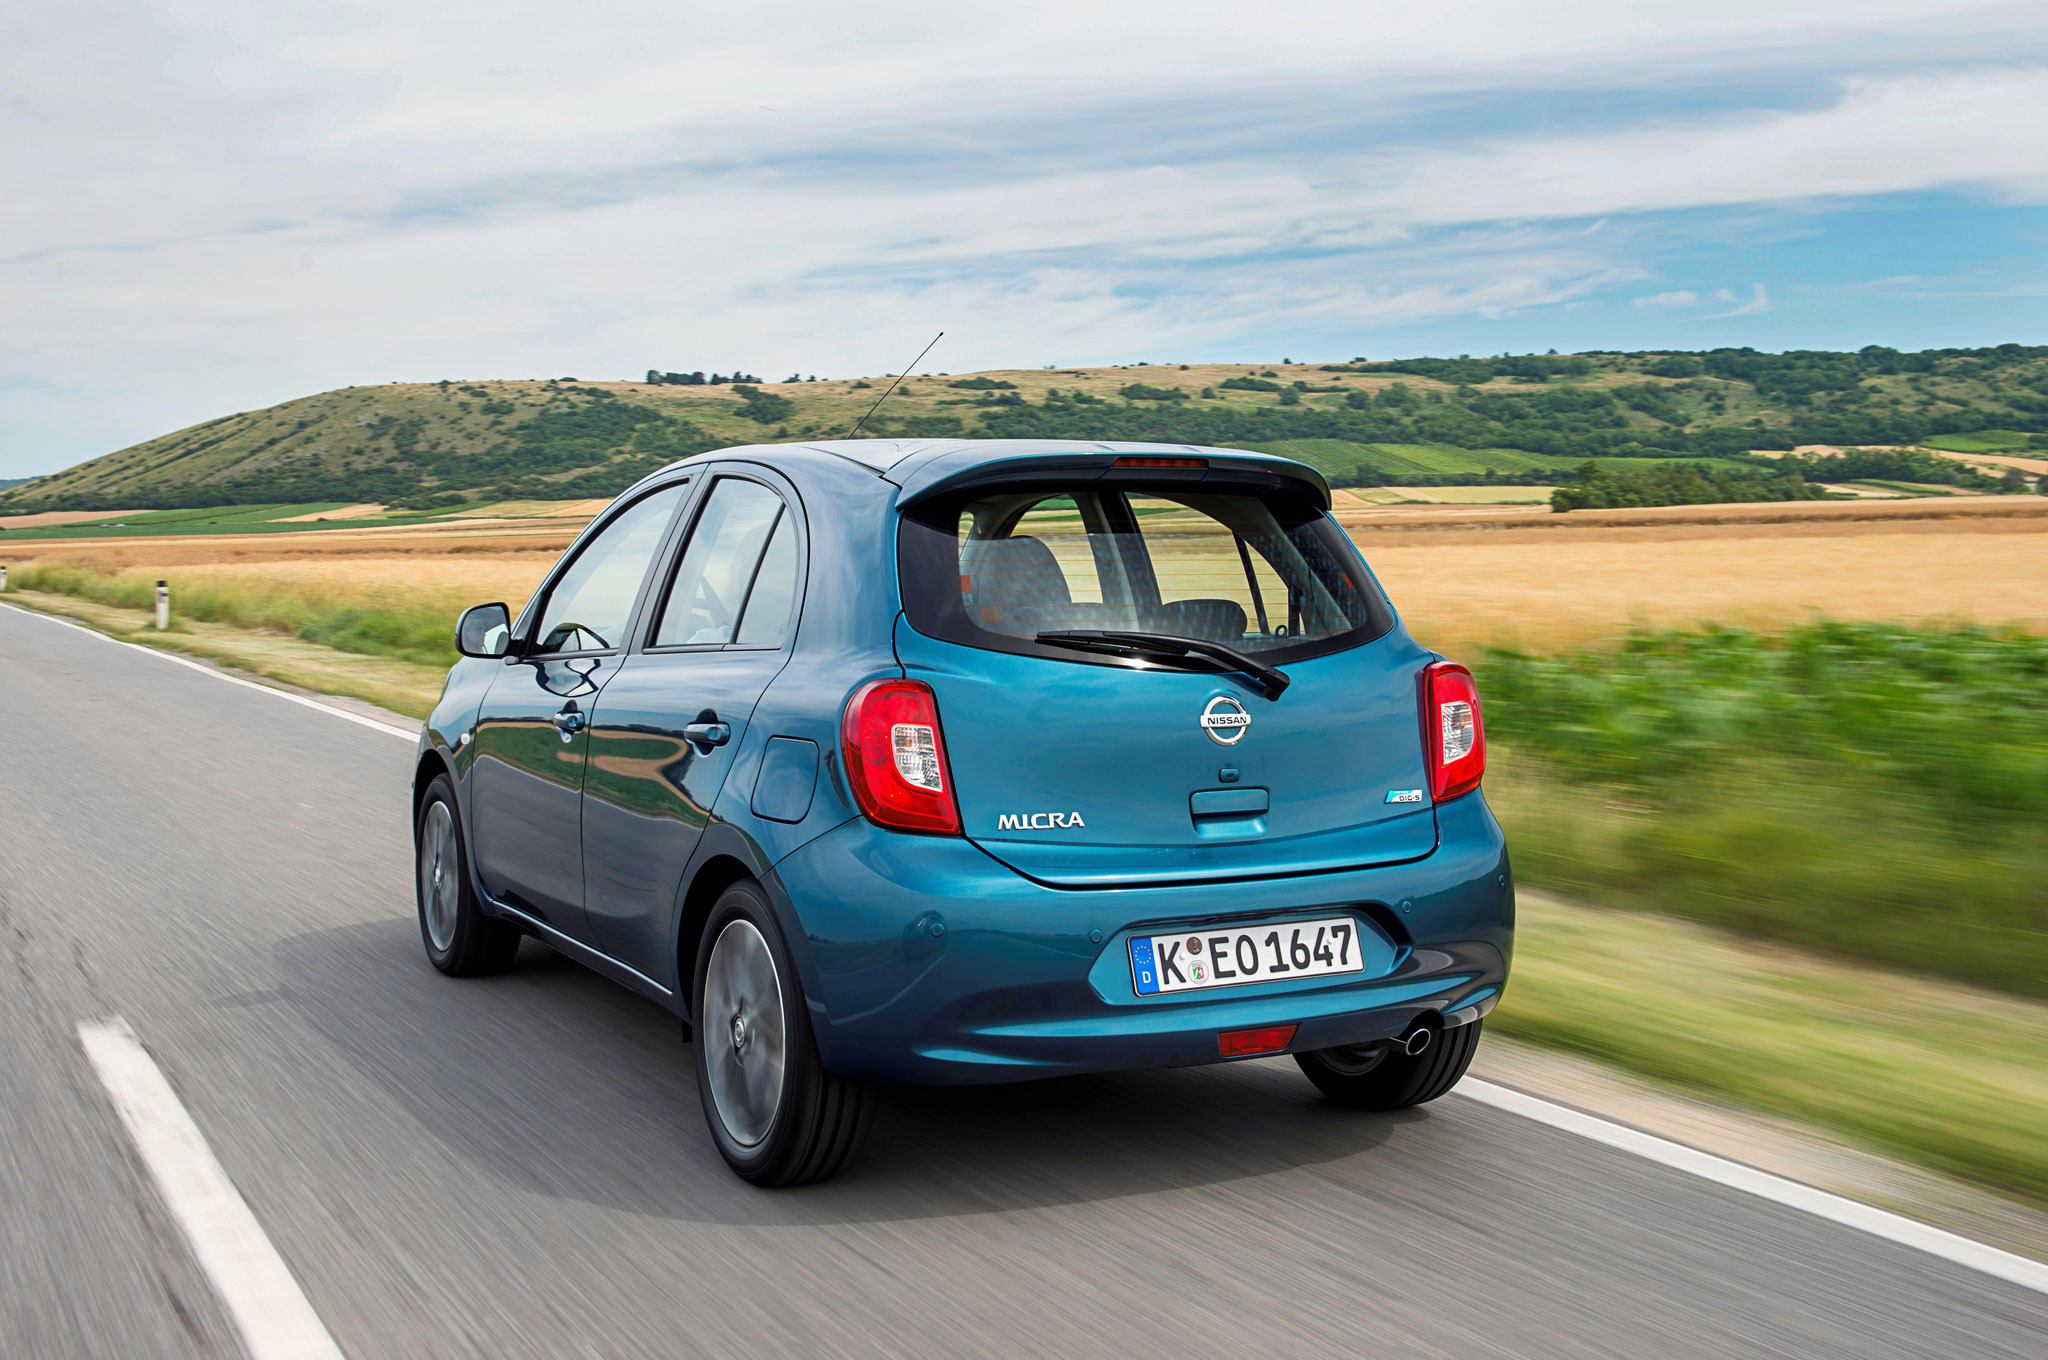 2013 Nissan Micra Left Rear Driving1